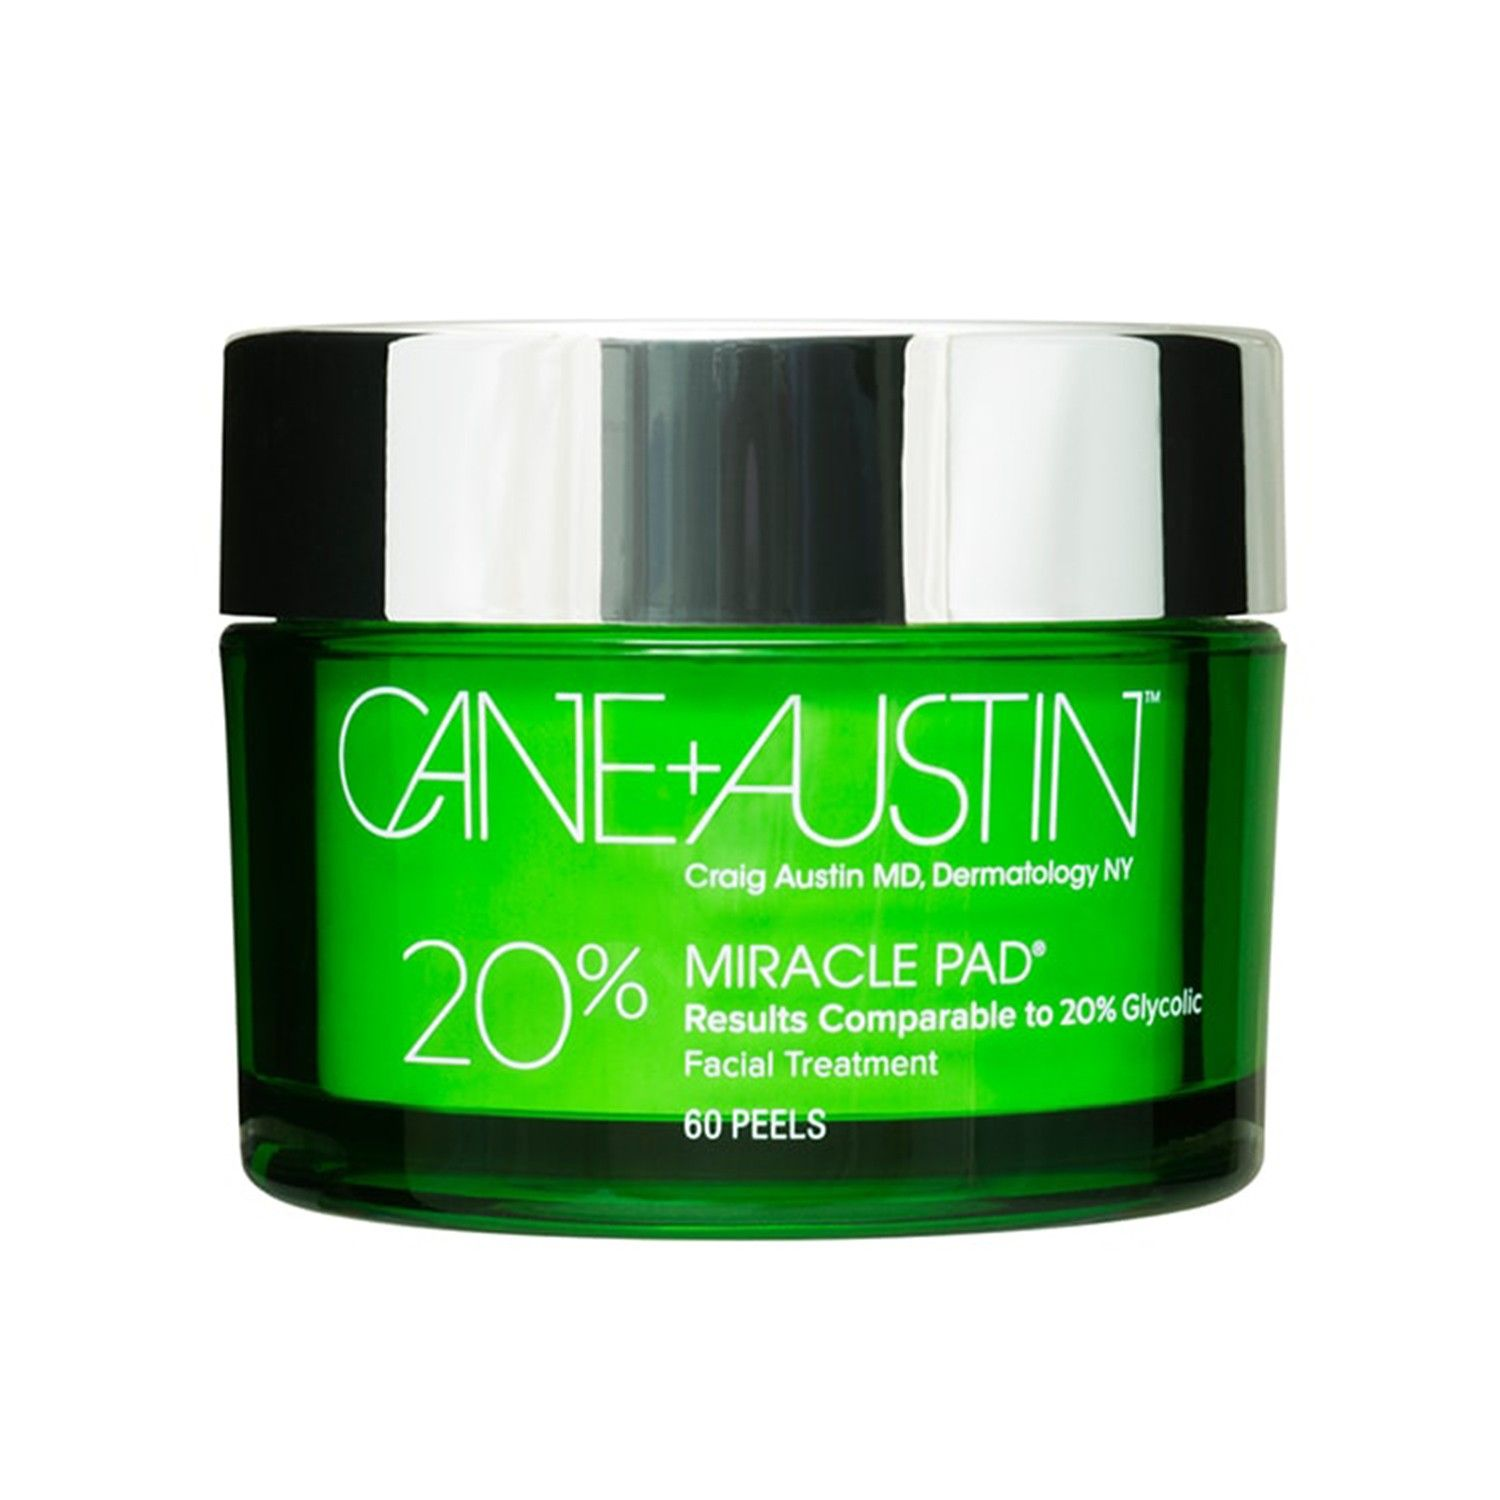 Cane + Austin 20% MIRACLE PAD (60 pads)